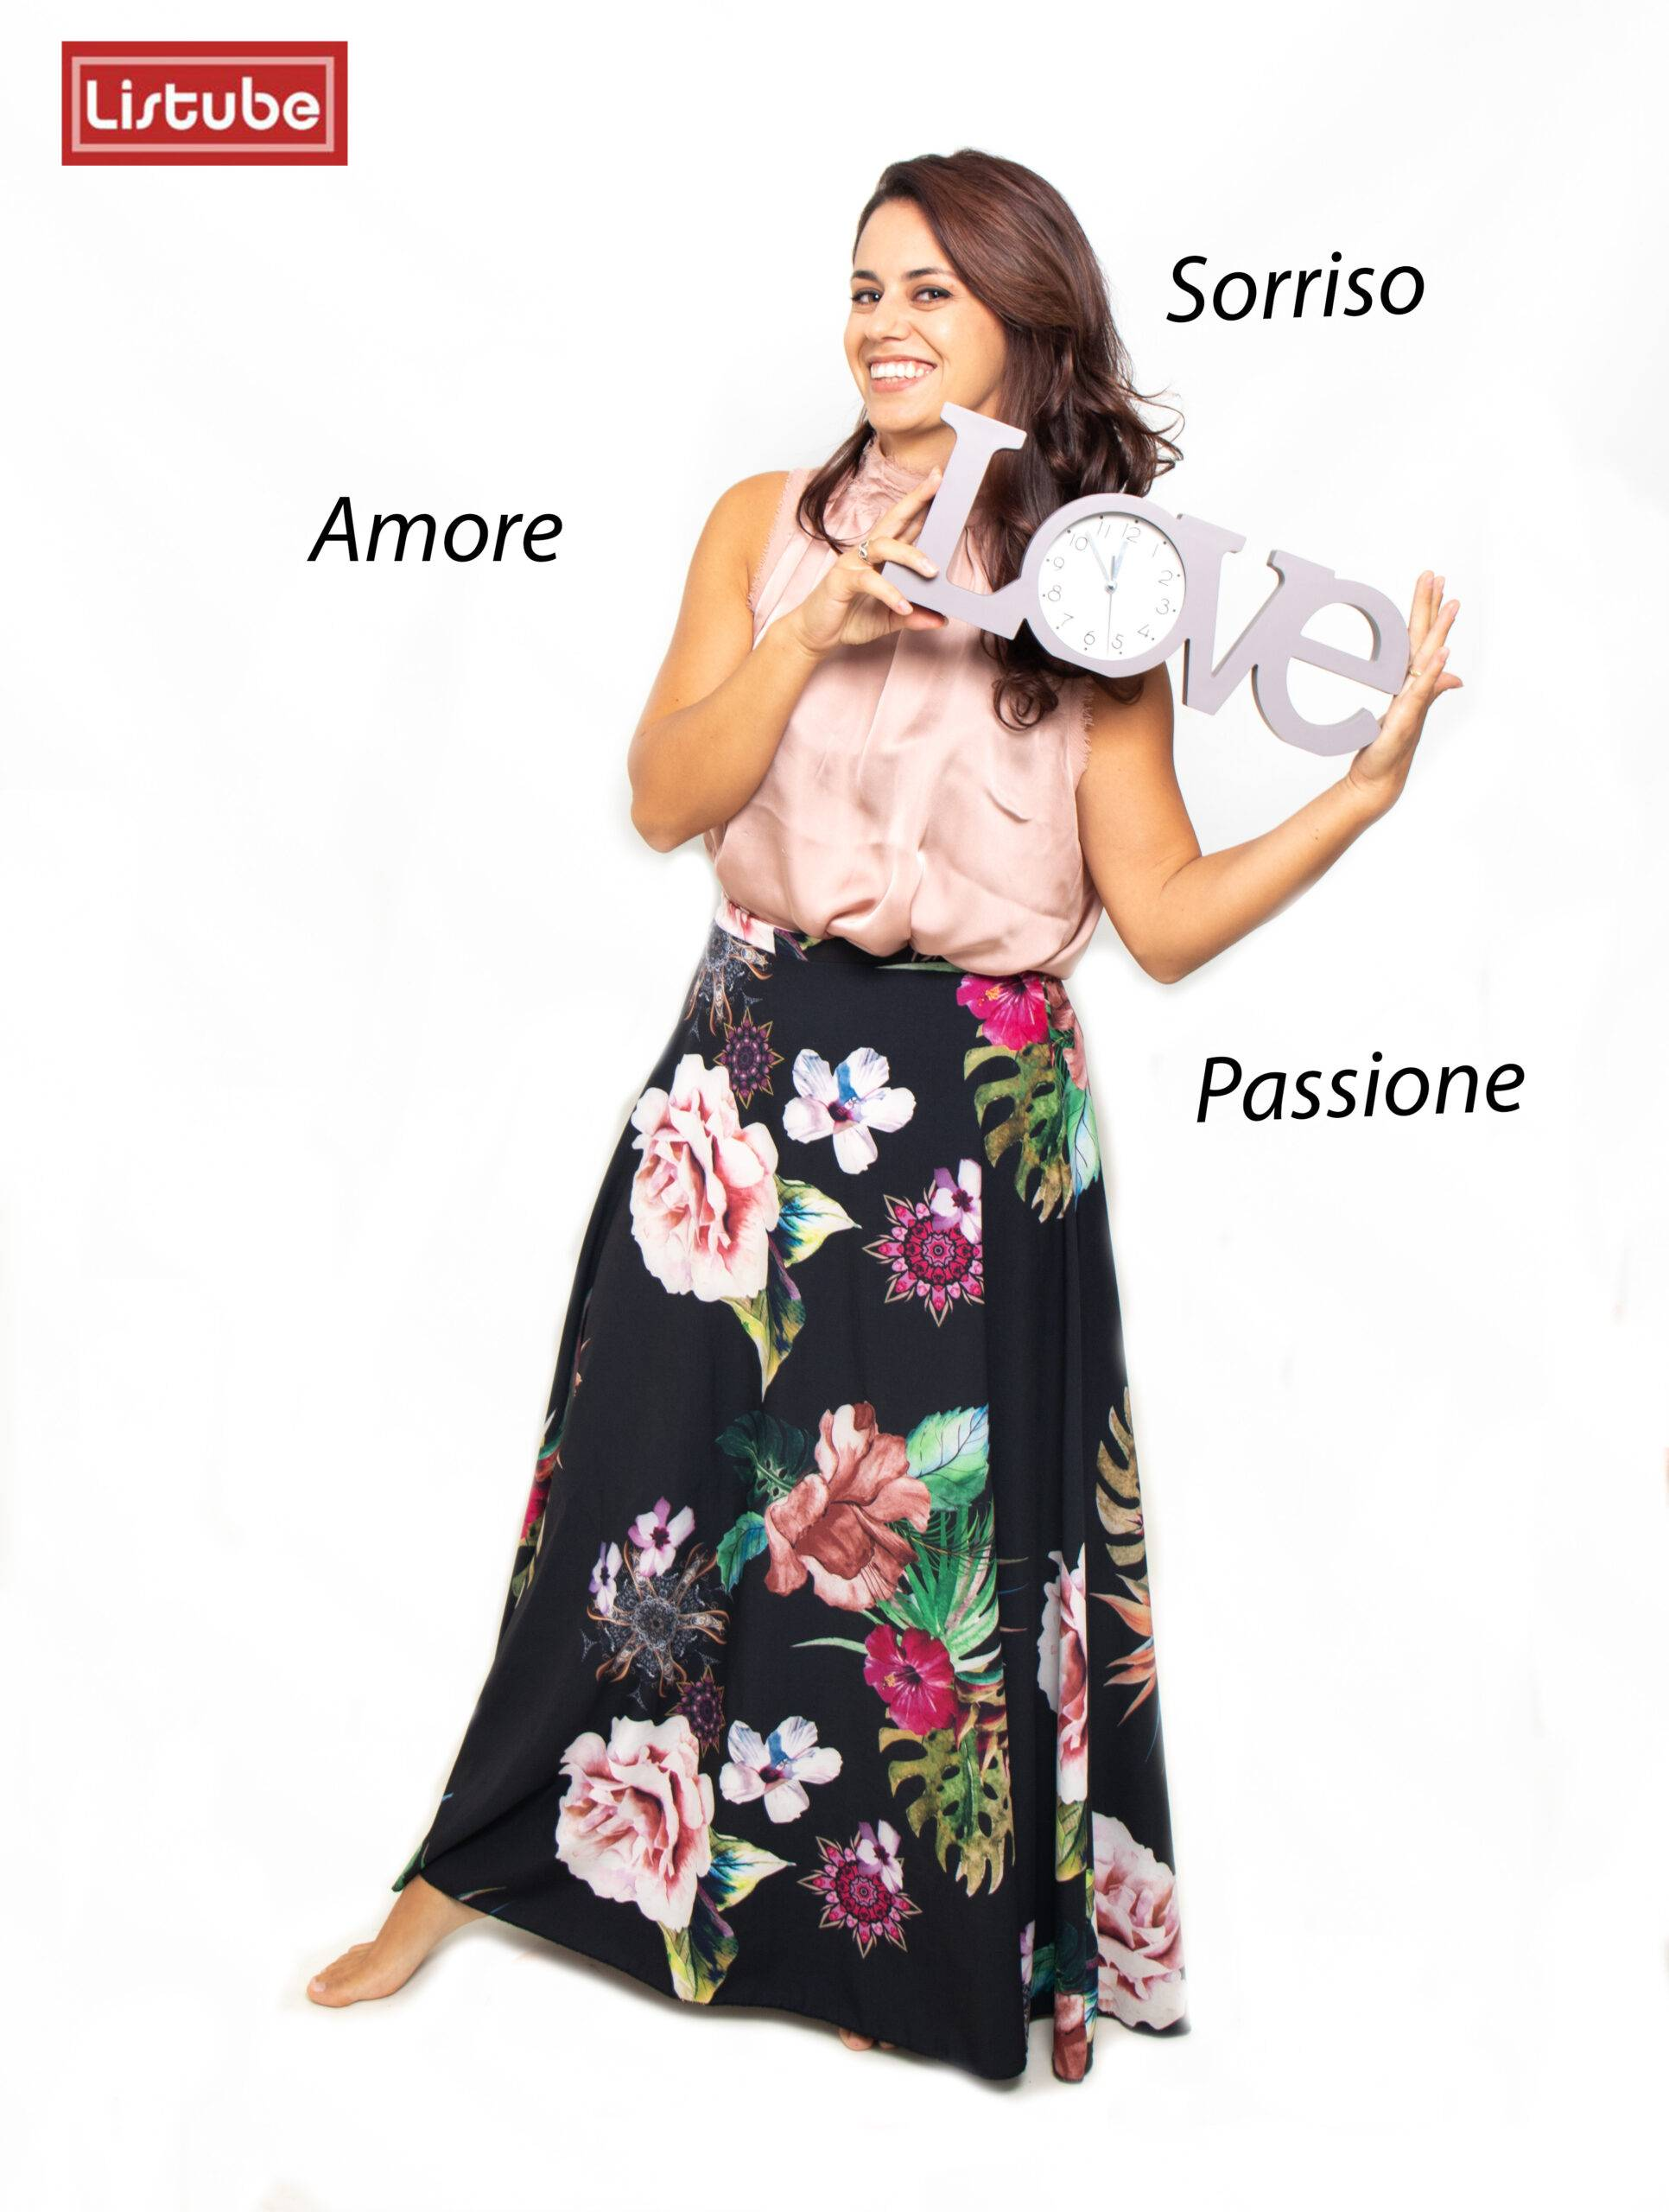 sorriso amore passione scaled